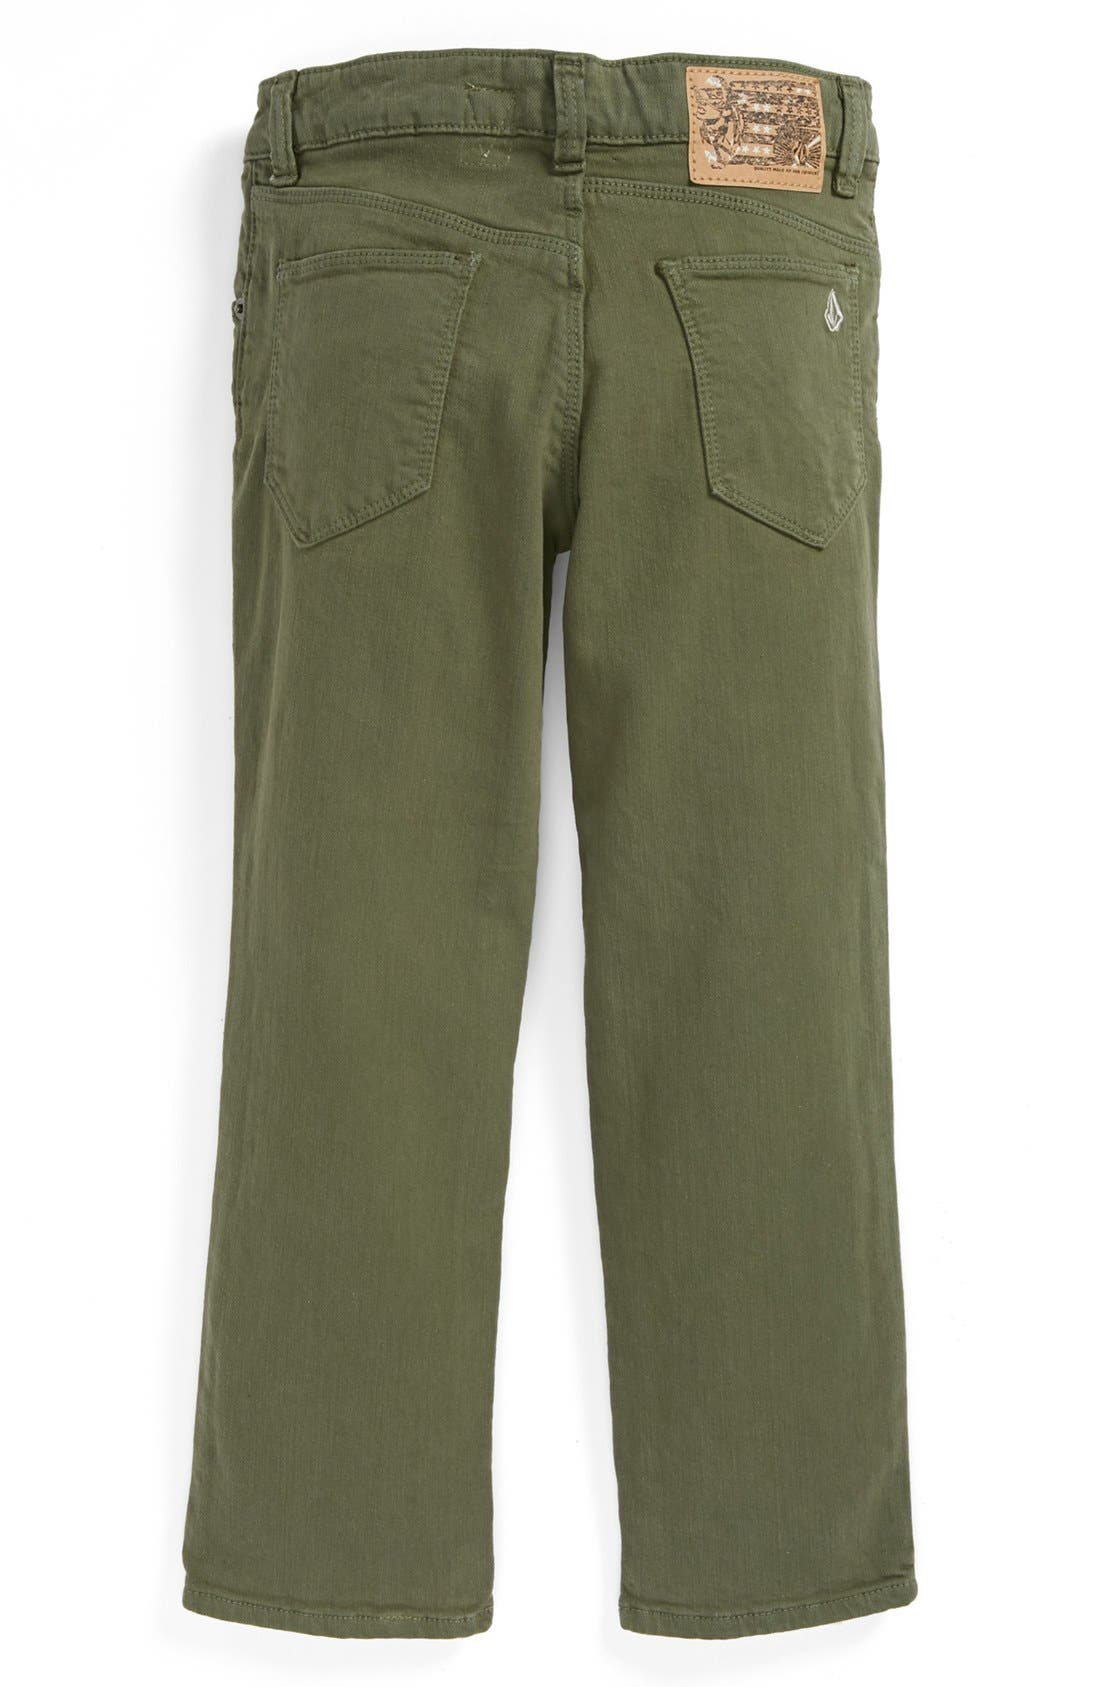 Alternate Image 1 Selected - Volcom 'Riser' Skinny Jeans (Little Boys & Big Boys)